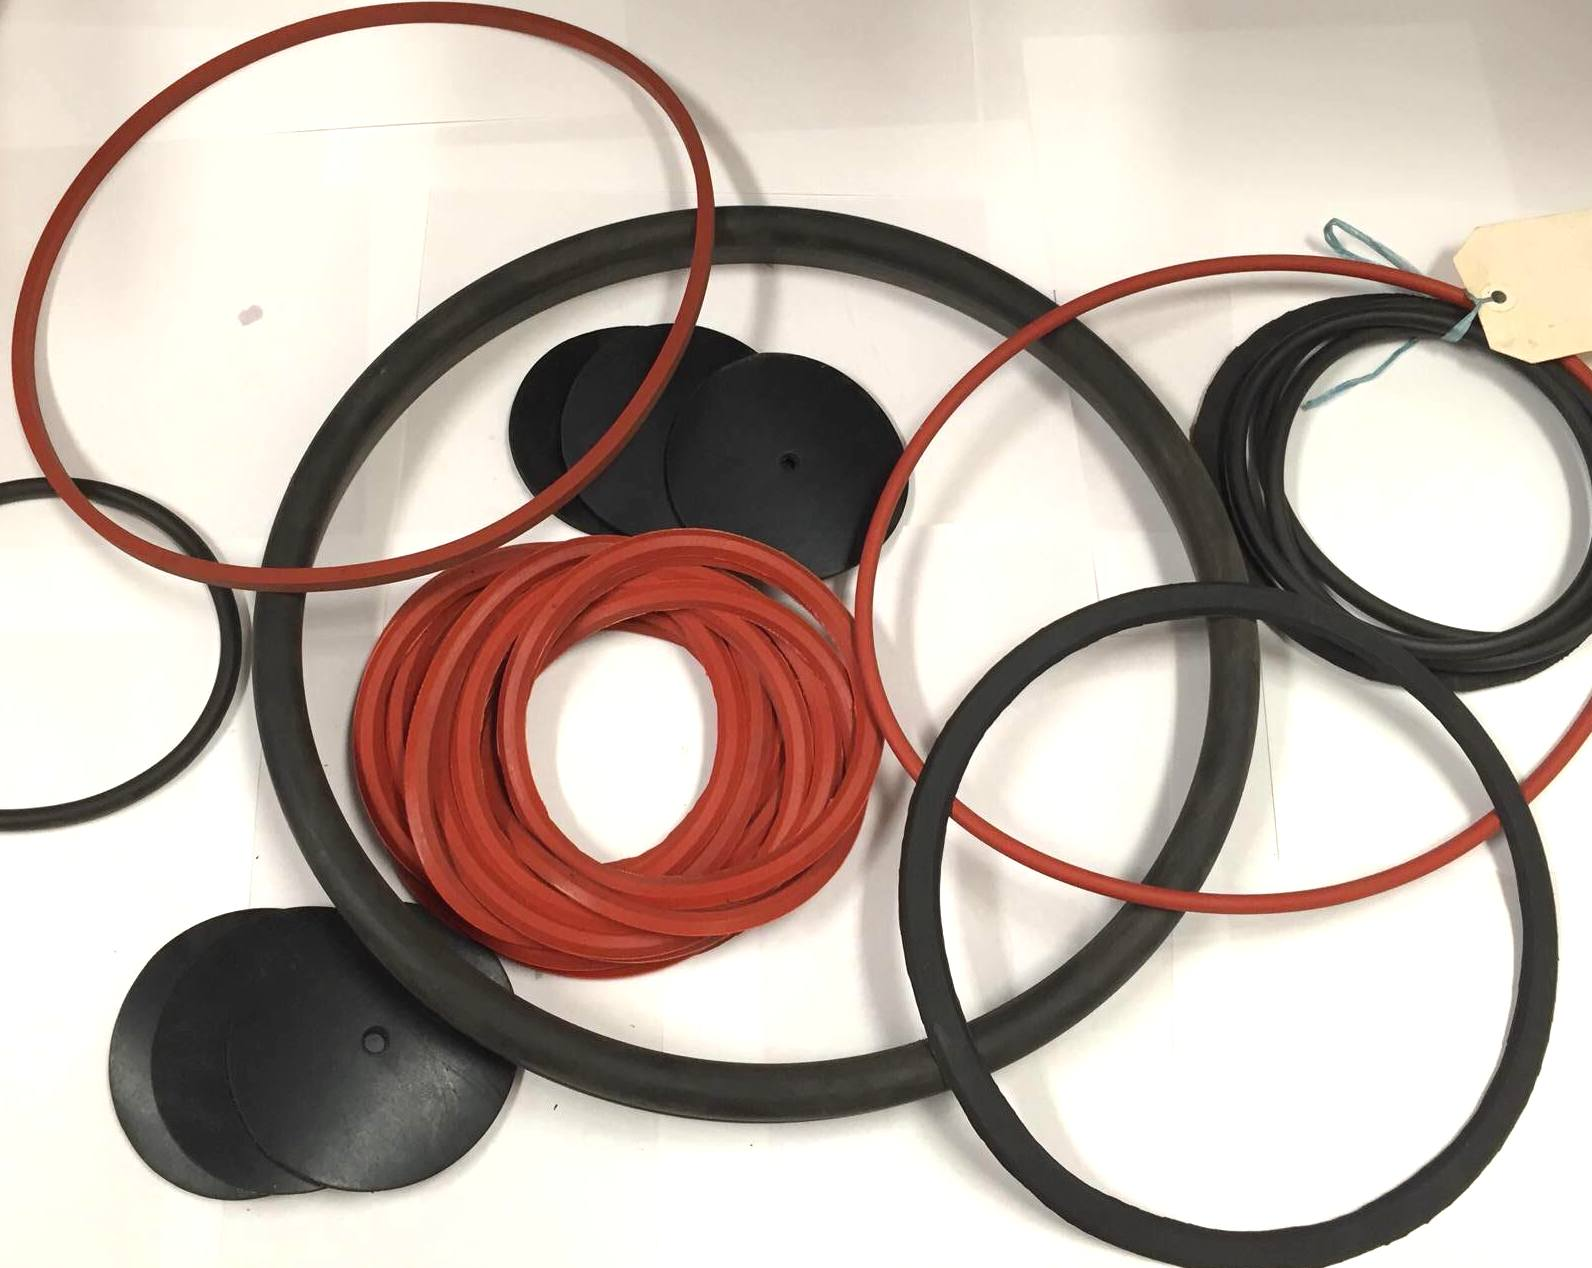 Rubber O-Rings and Washers